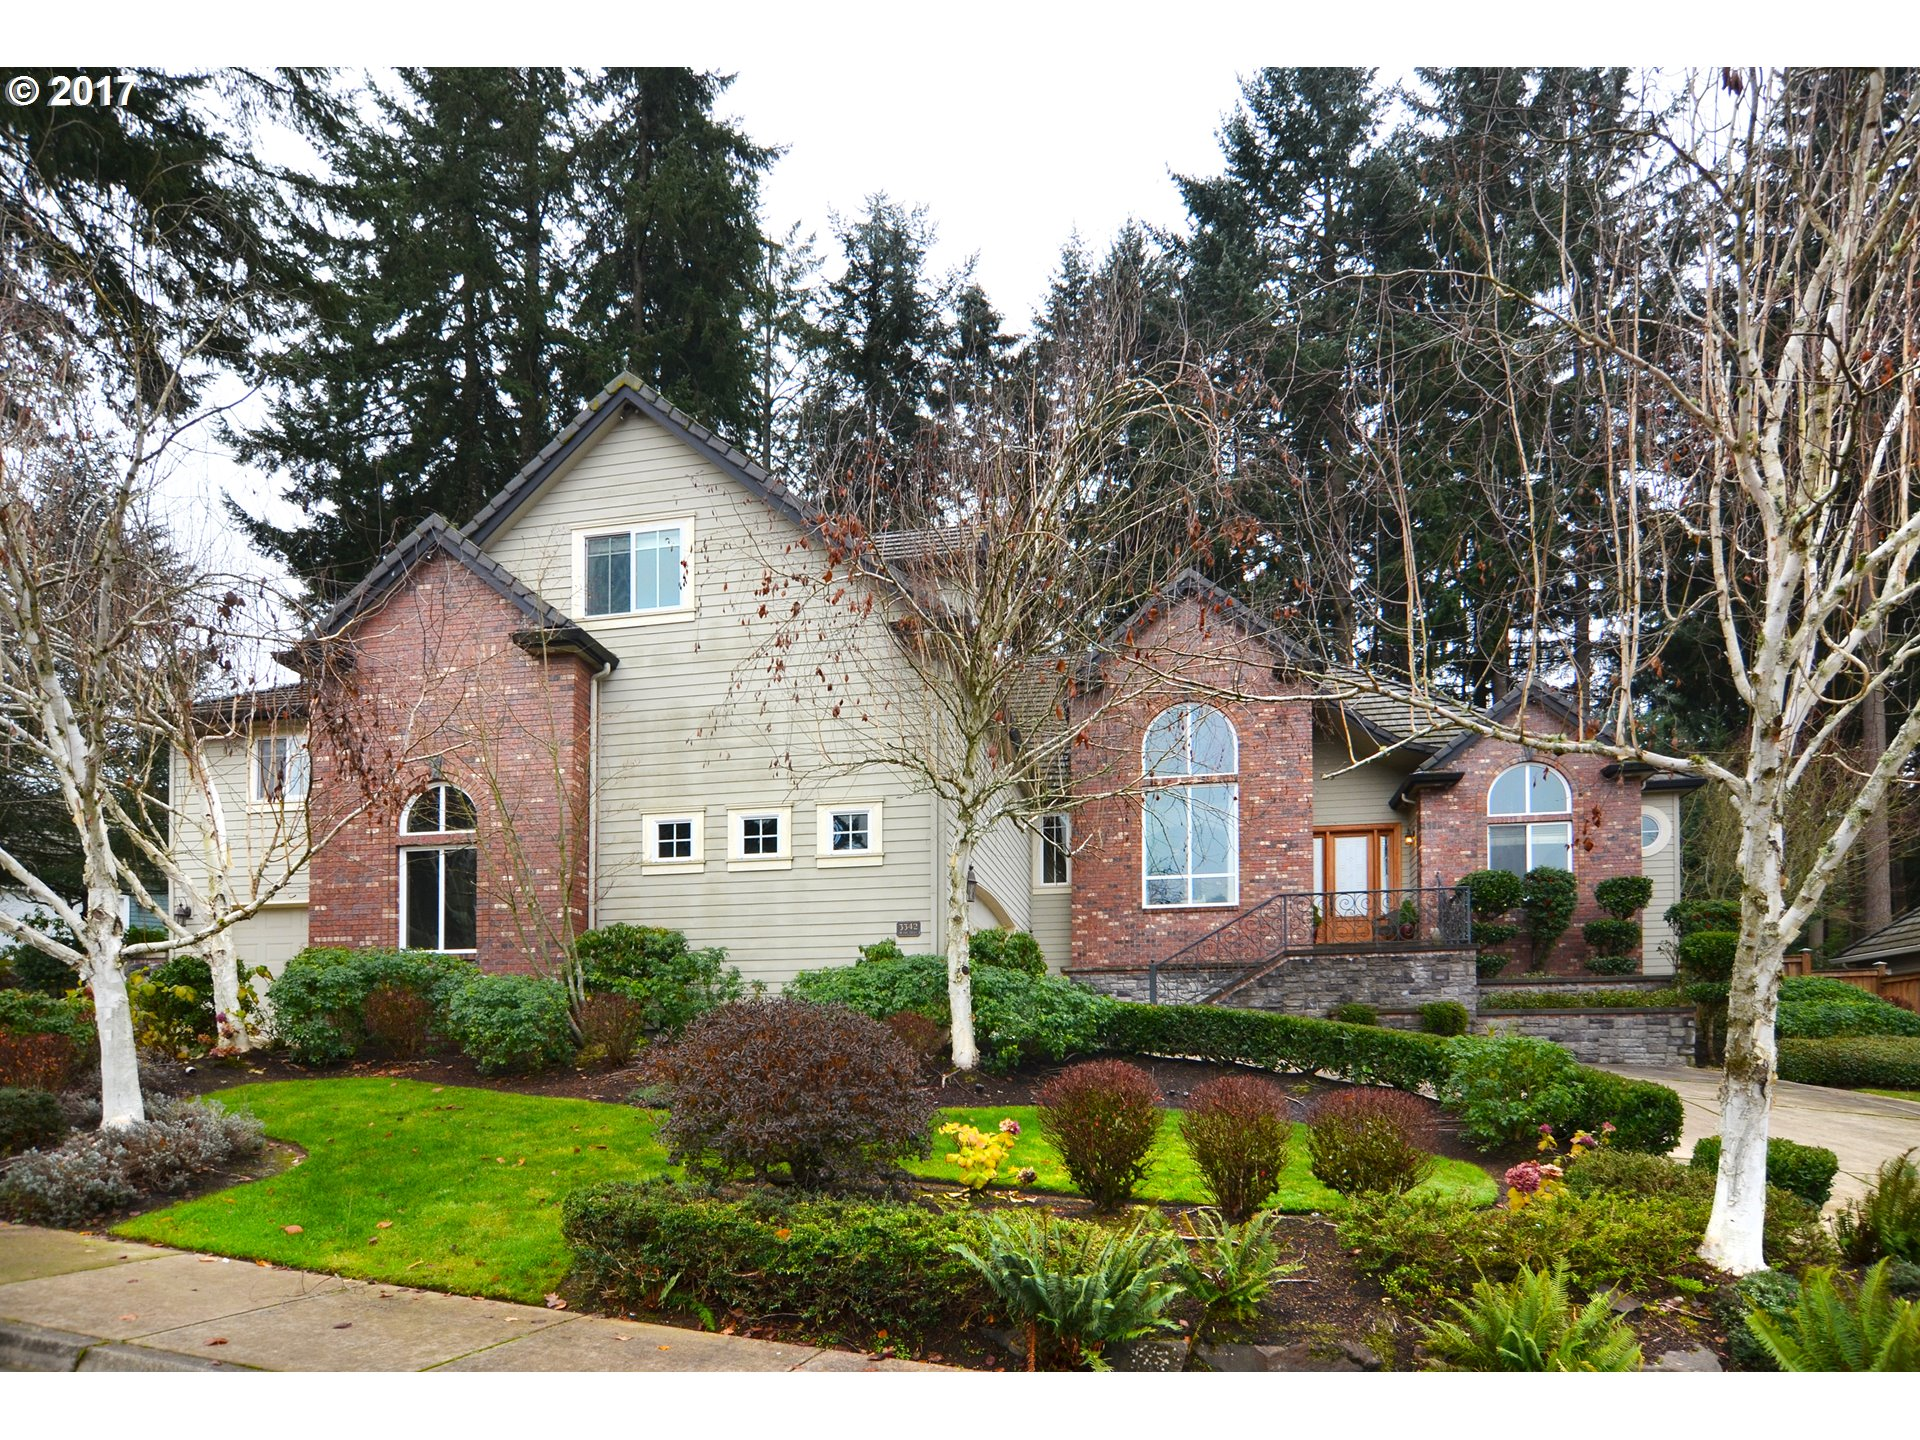 3342 MURRY DR, Eugene, OR 97405